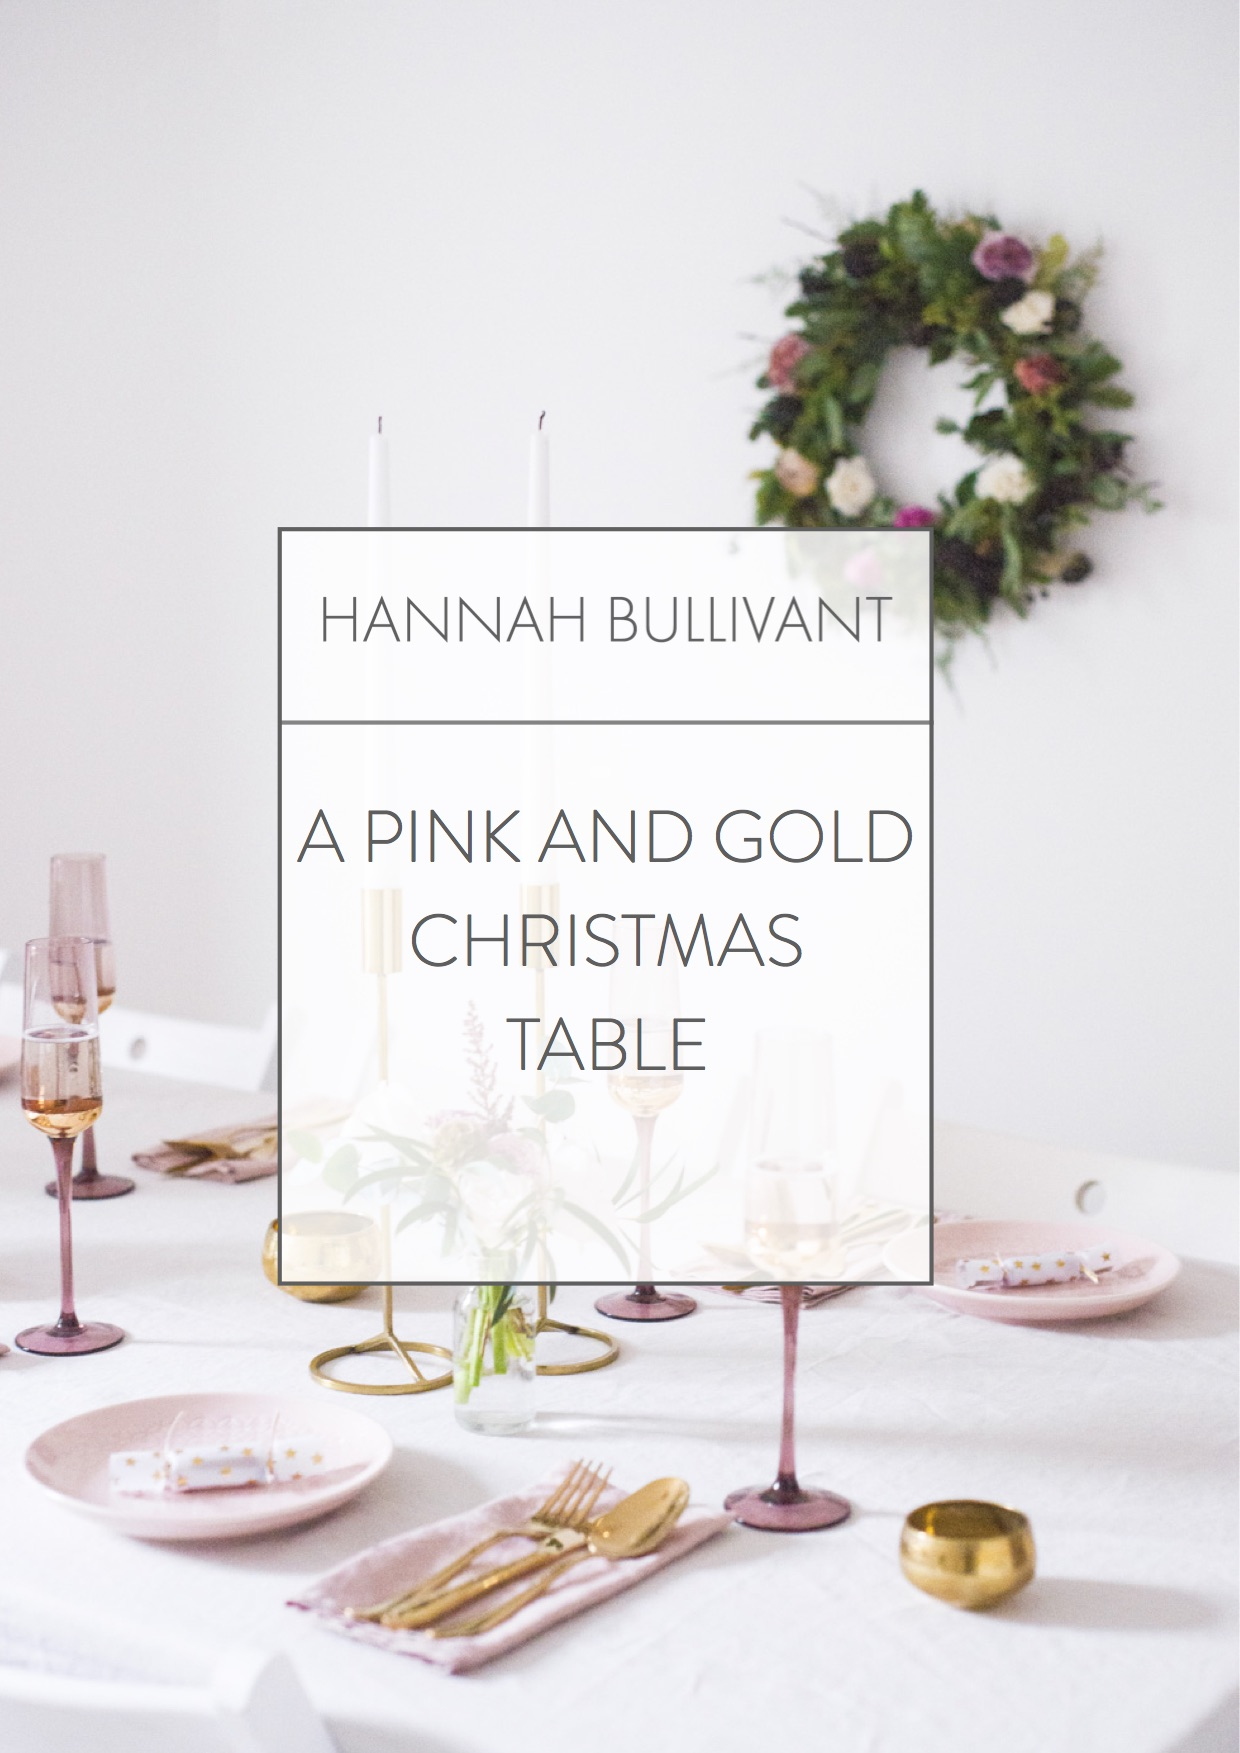 Christmas table styling. HannahBullivant x Betty Magazine